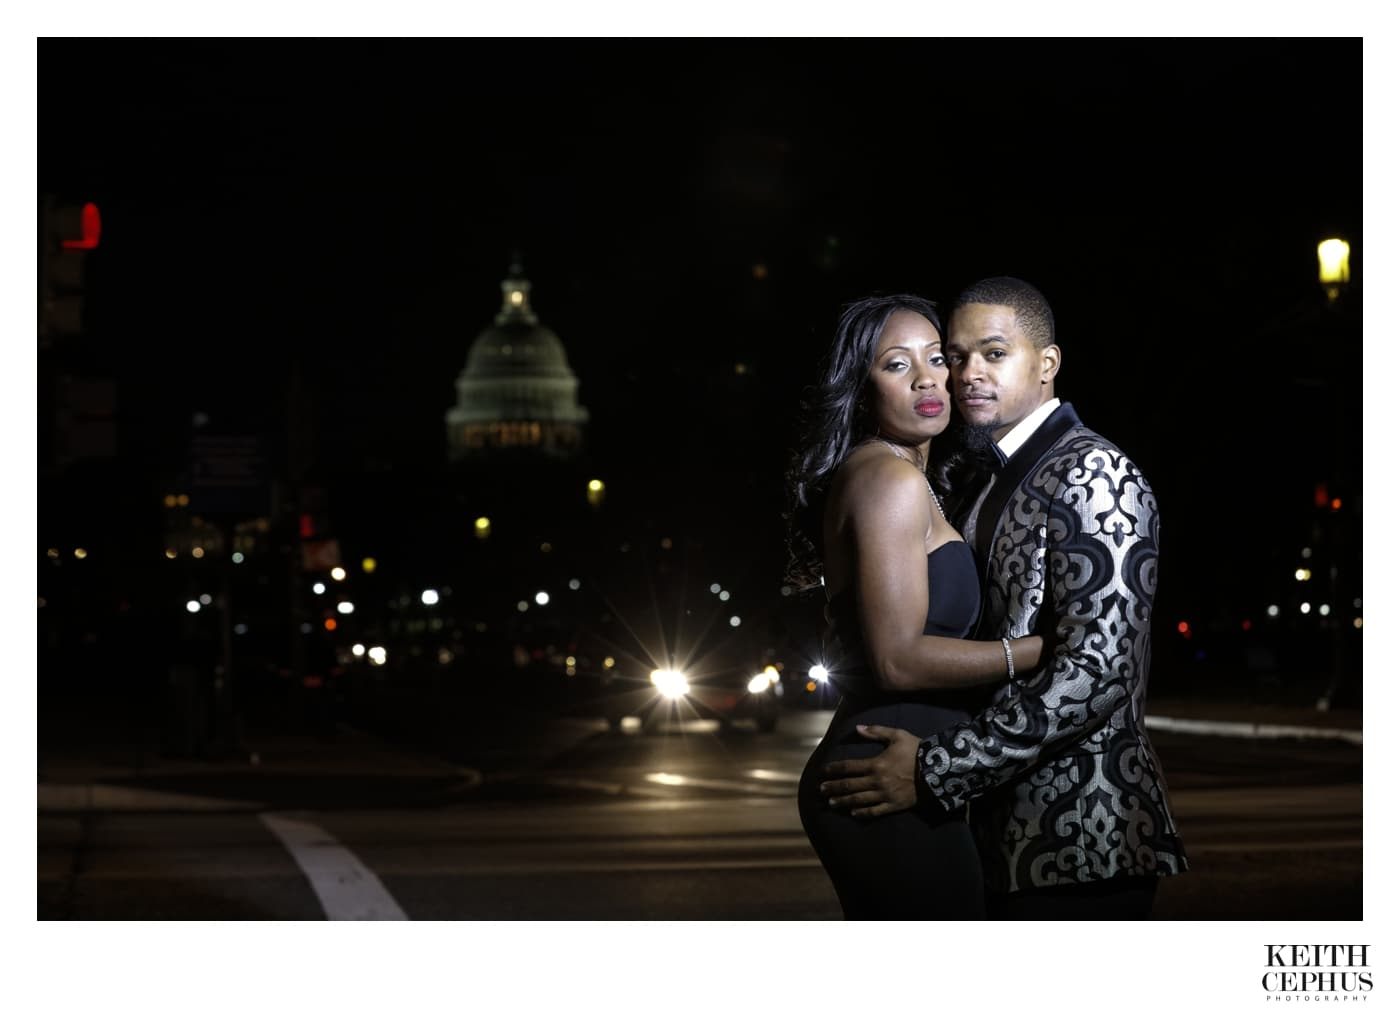 National Gallery of Art Wedding Photographer | Washington DC Wedding Photographer | Latoya and Chris' Engagement Session